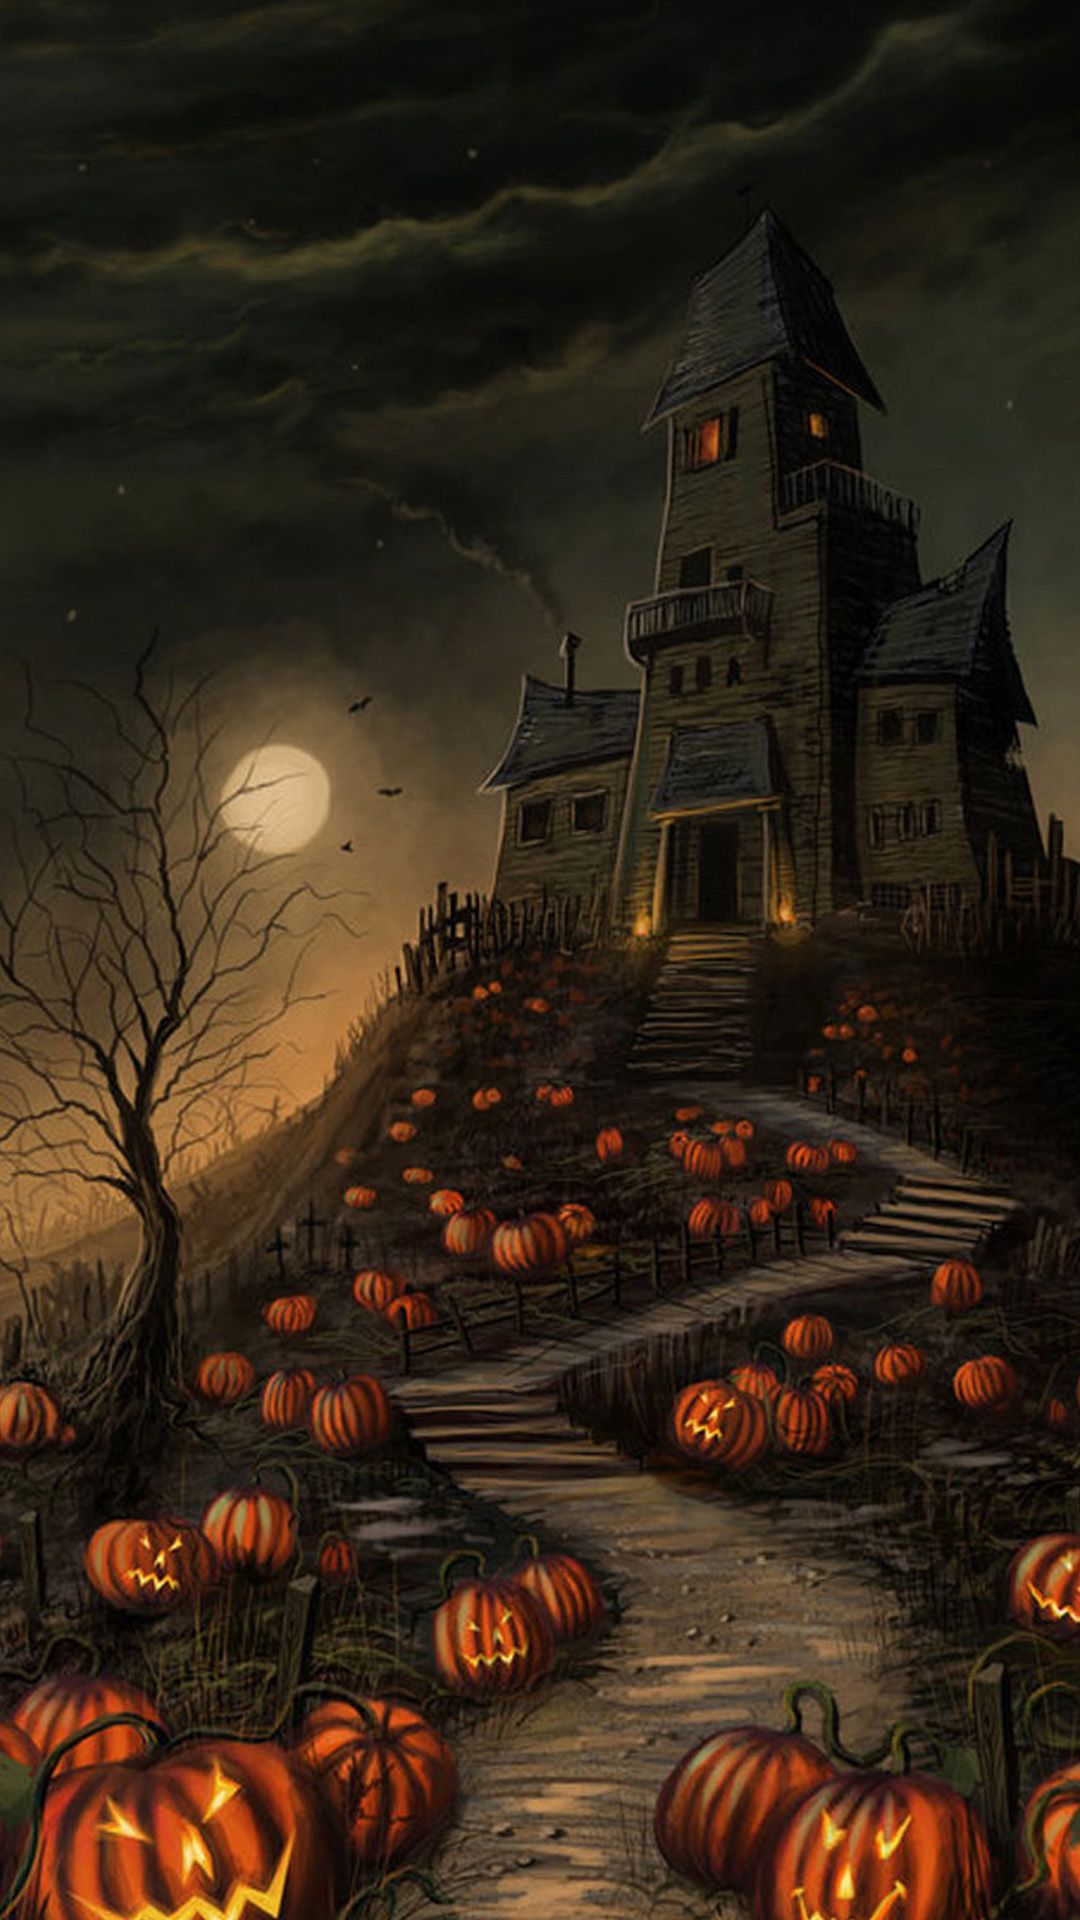 1080x1920 Halloween Haunted House Pumpkin Android Wallpaper free download